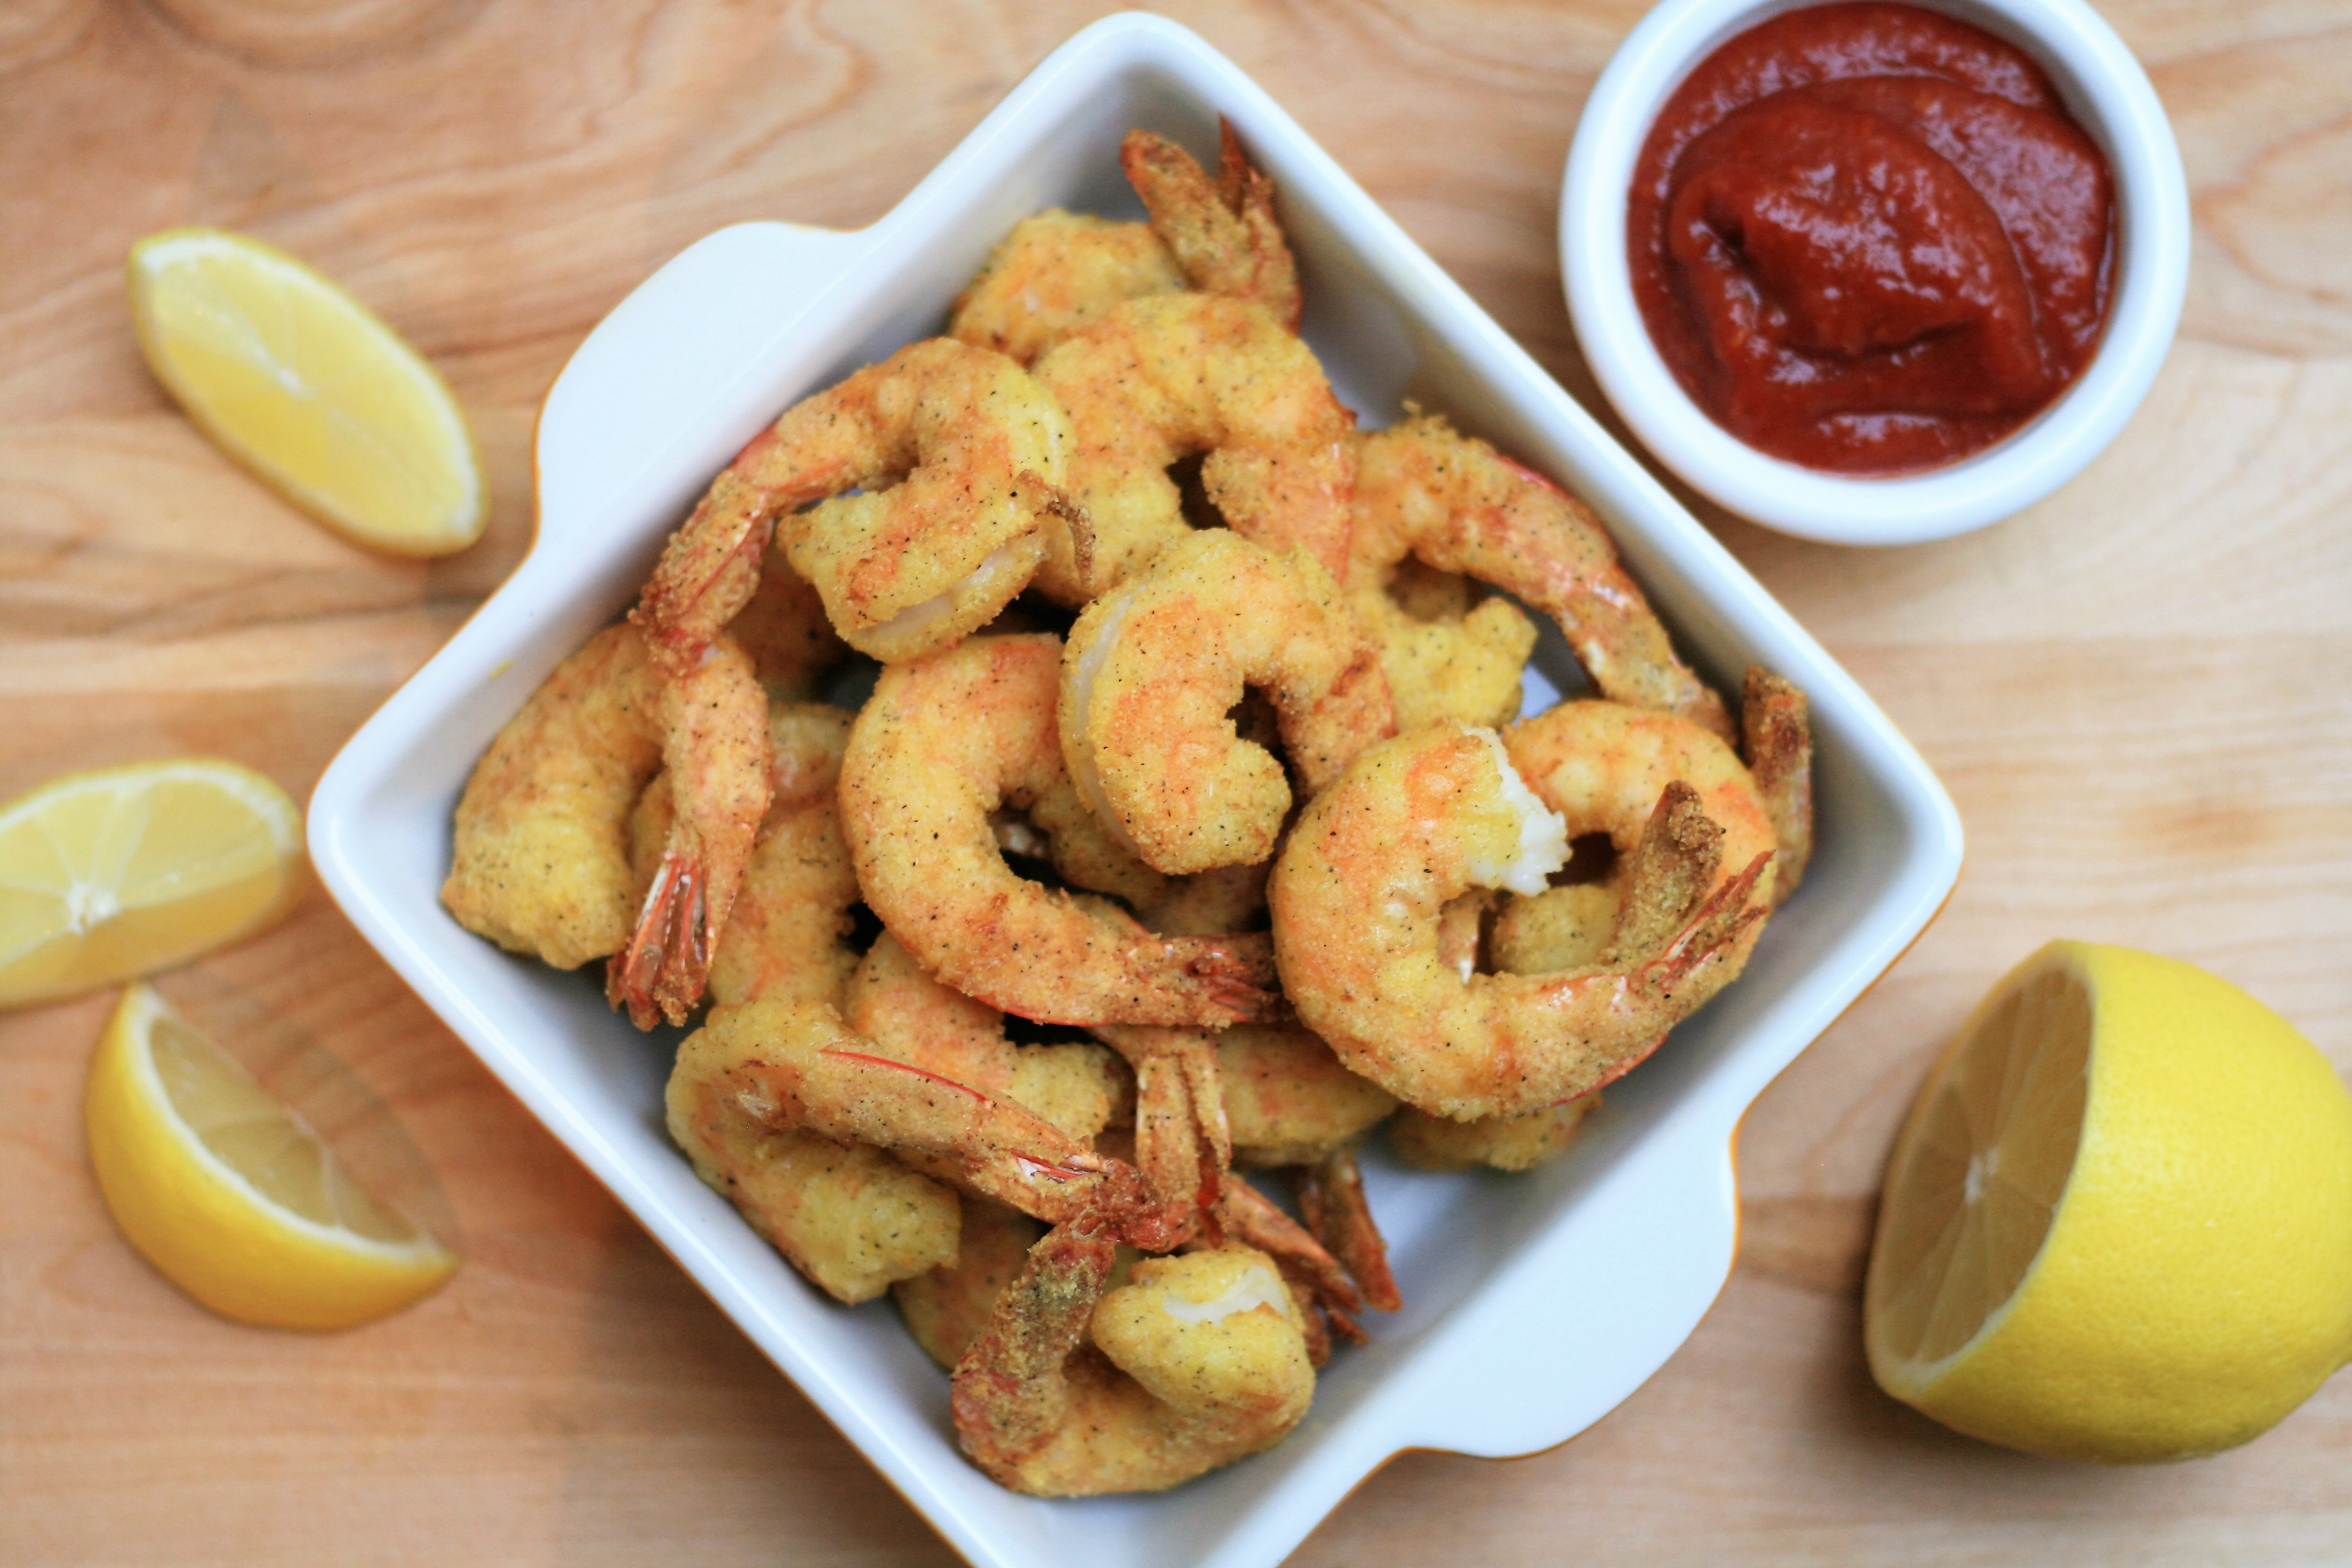 """""""Fish fry seasoning, egg, and a spritz of oil are all you need to make these tasty, crispy air fryer shrimp!"""" says France C. """"Use your favorite brand of fish fry breading mix. Serve with cocktail sauce, lemon-garlic aioli, or whatever you prefer!"""""""